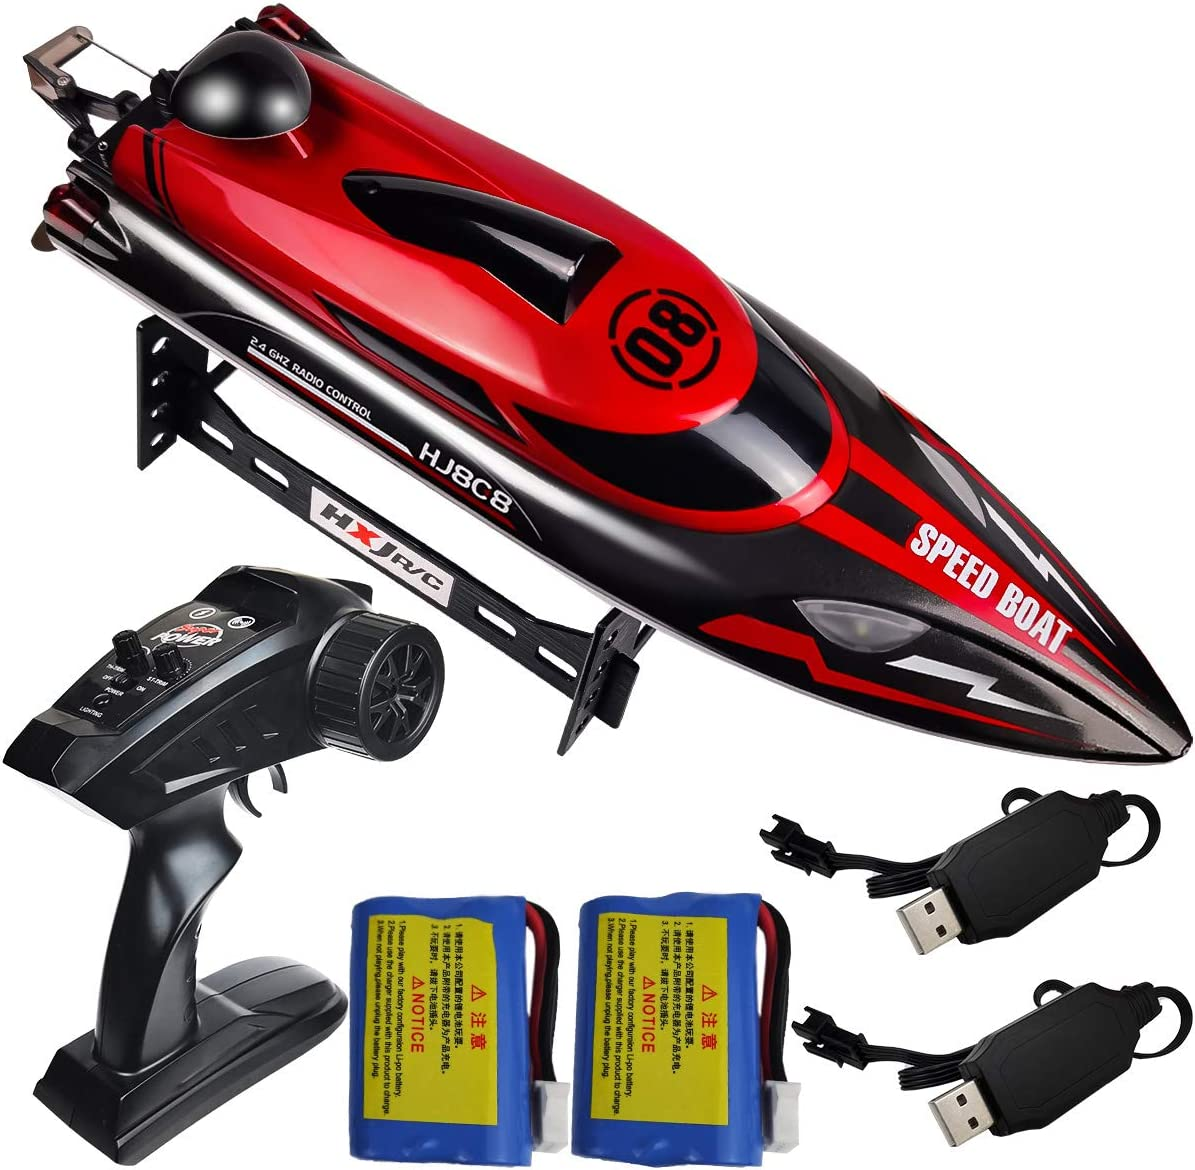 HONGXUNJIE 2.4Ghz RC Boat- 20+ MPH High Speed Remote Control Boat for Adults and Kids for Lakes and Pools with 2 Rechargeable Batteries, Low Battery Alarm, Capsize Recovery (RED)